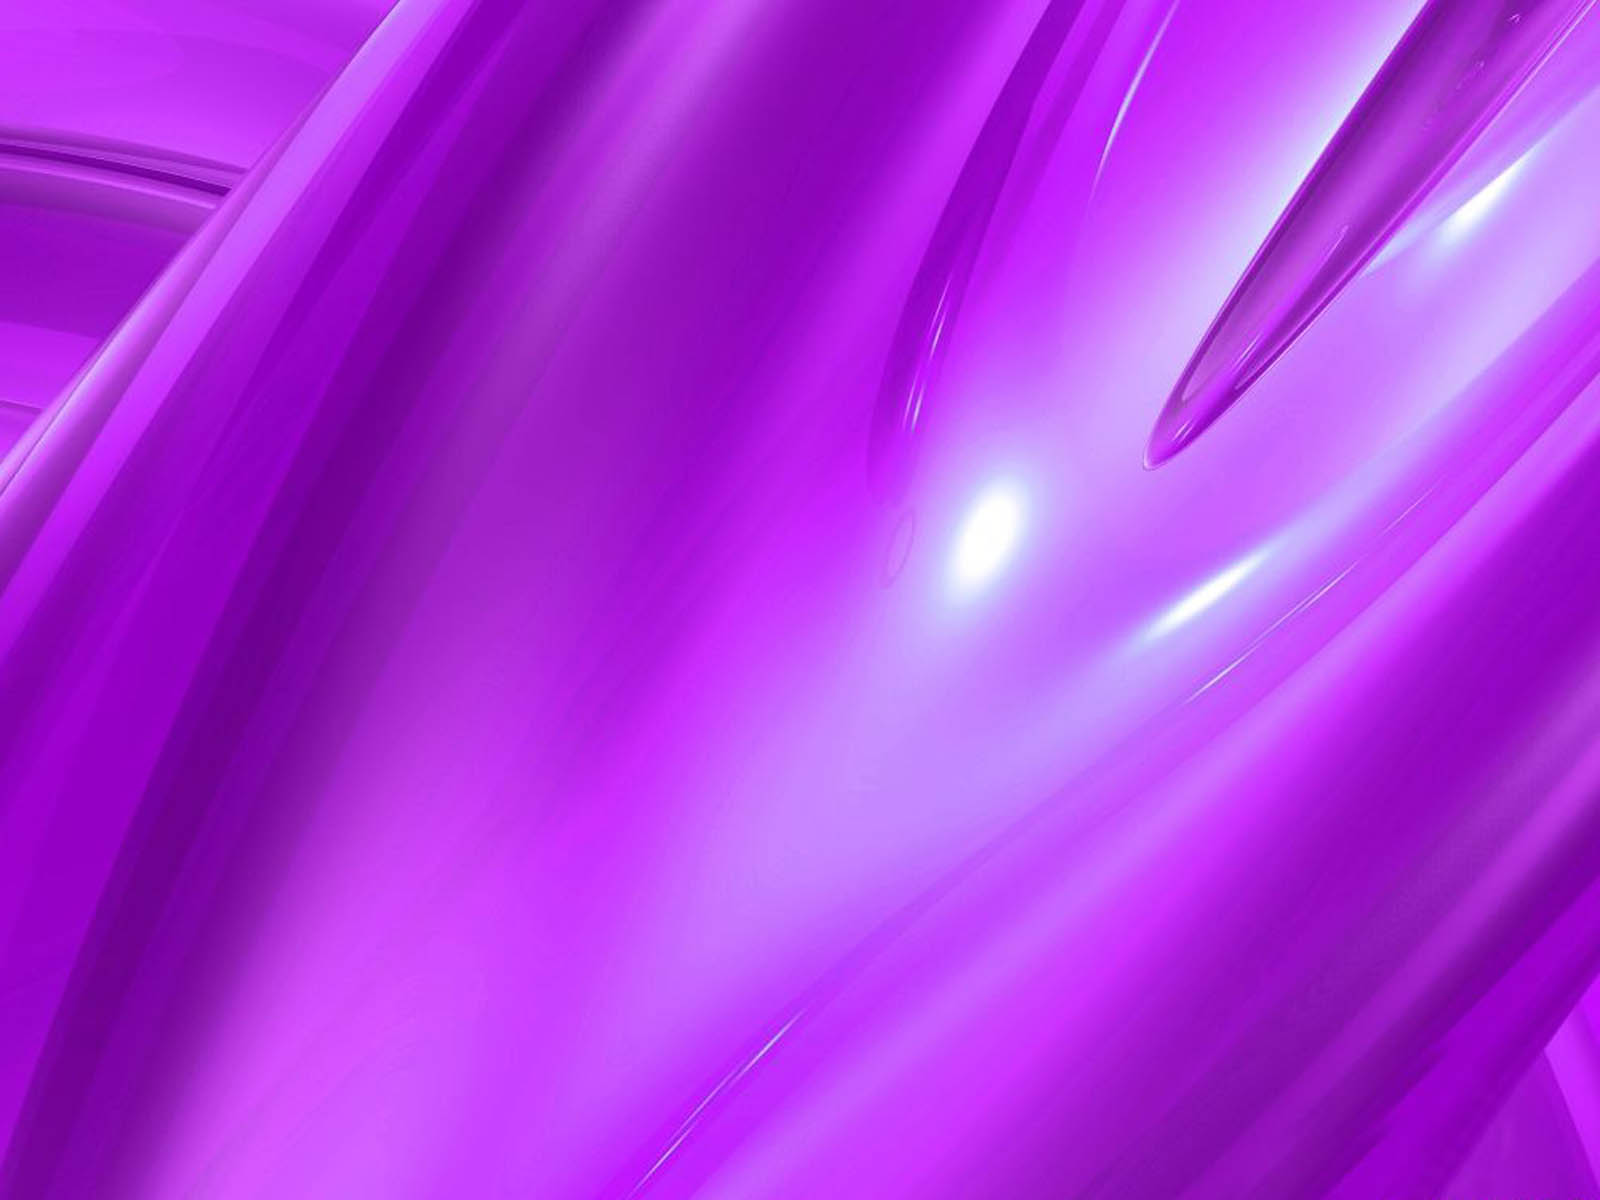 wallpaper 3d purple wallpapers